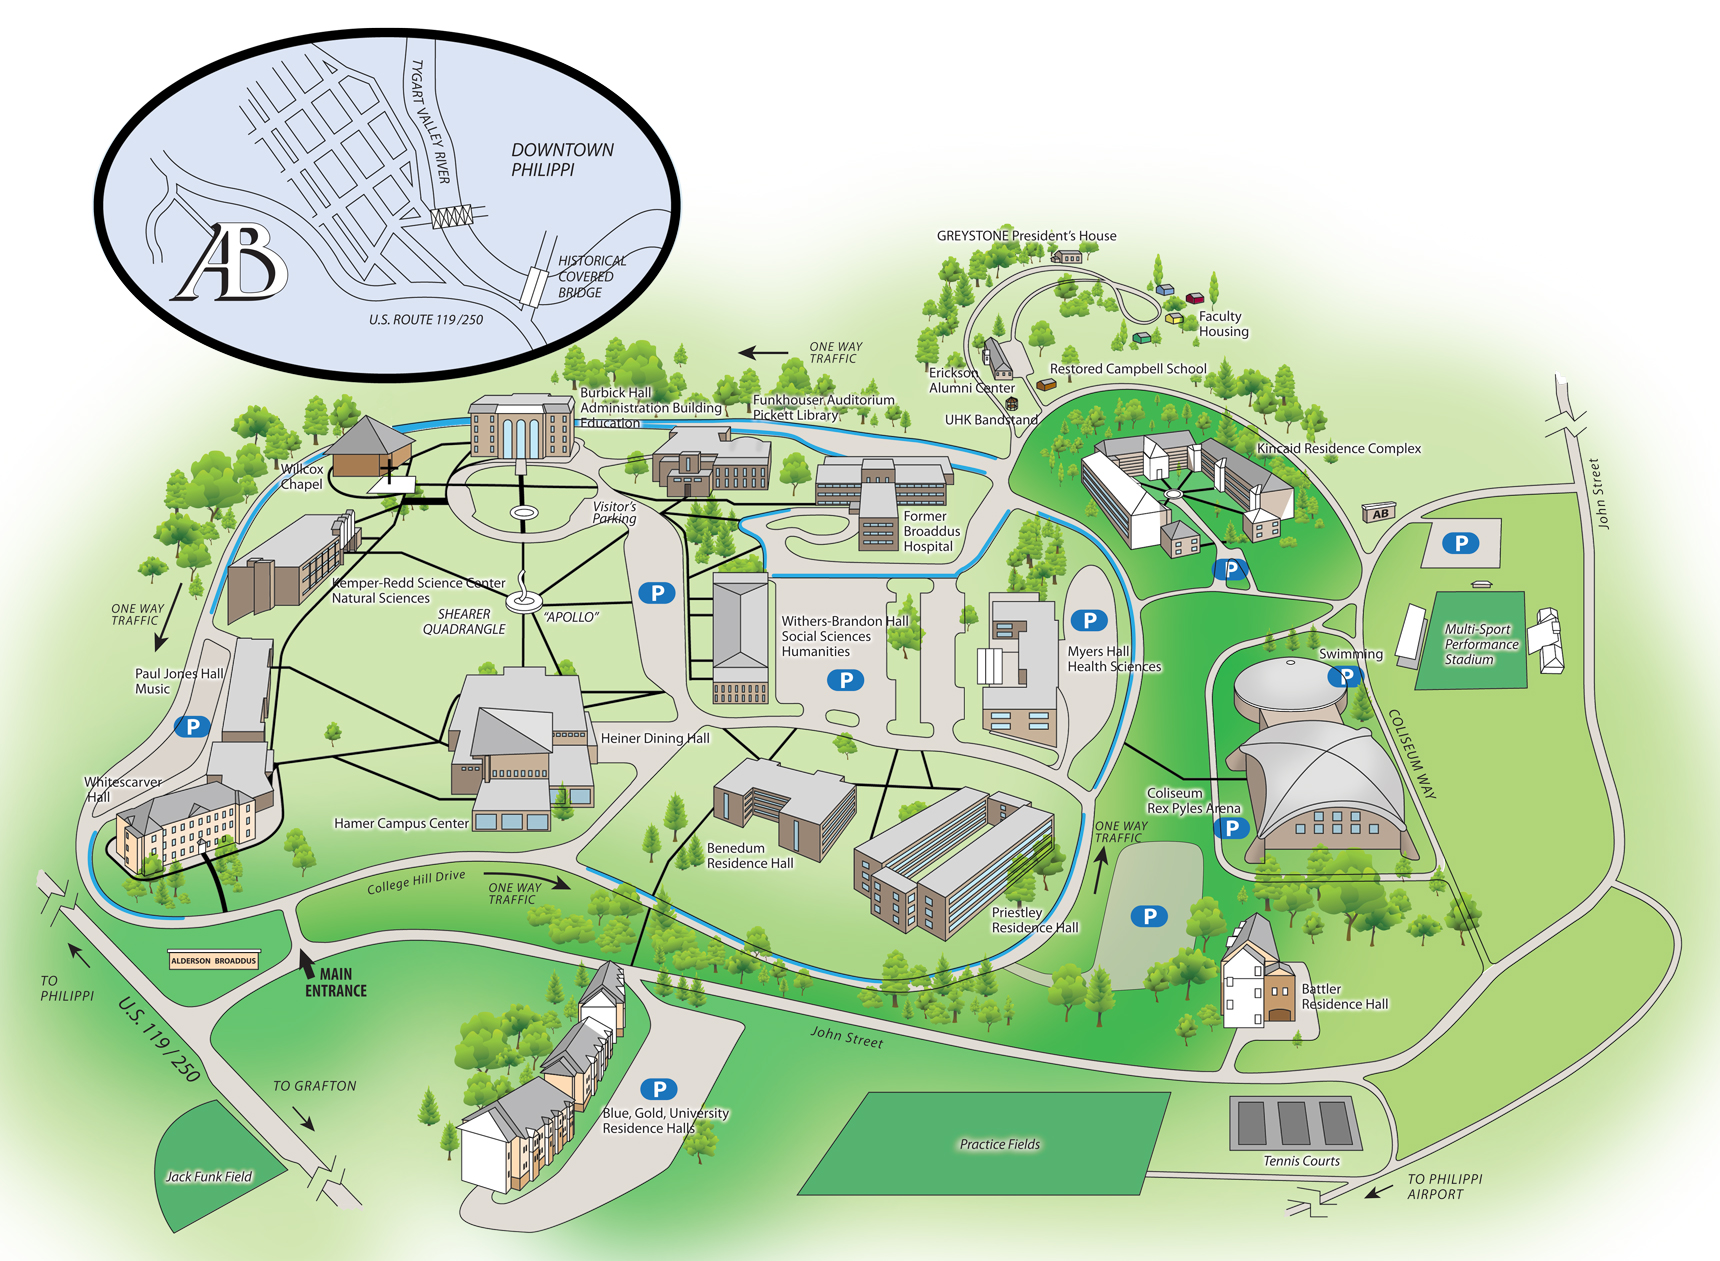 Campus Map Visitor Student Residence Hall Chapel Parking